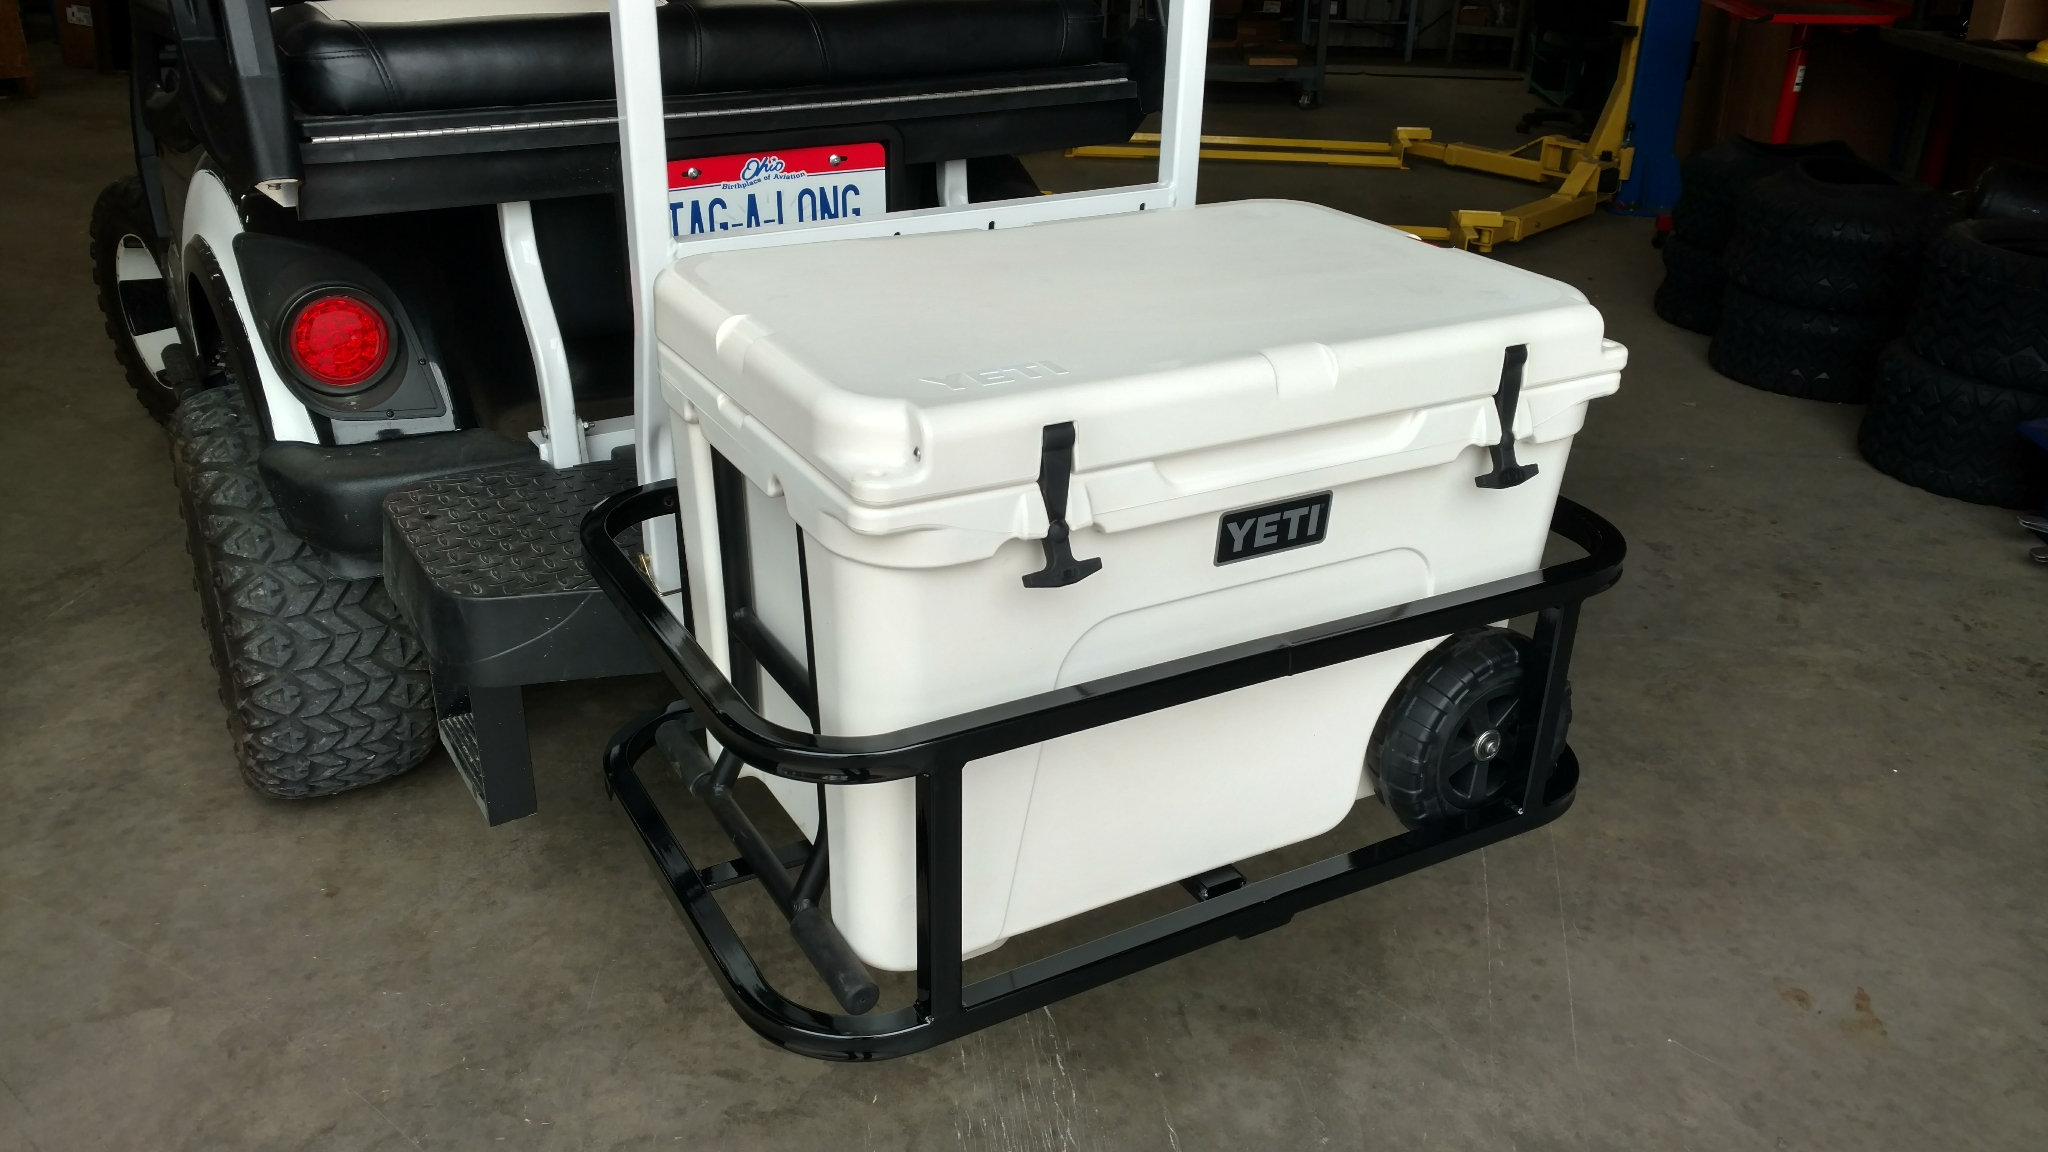 Yeti Tundra Haul Hitch Cooler Carrier